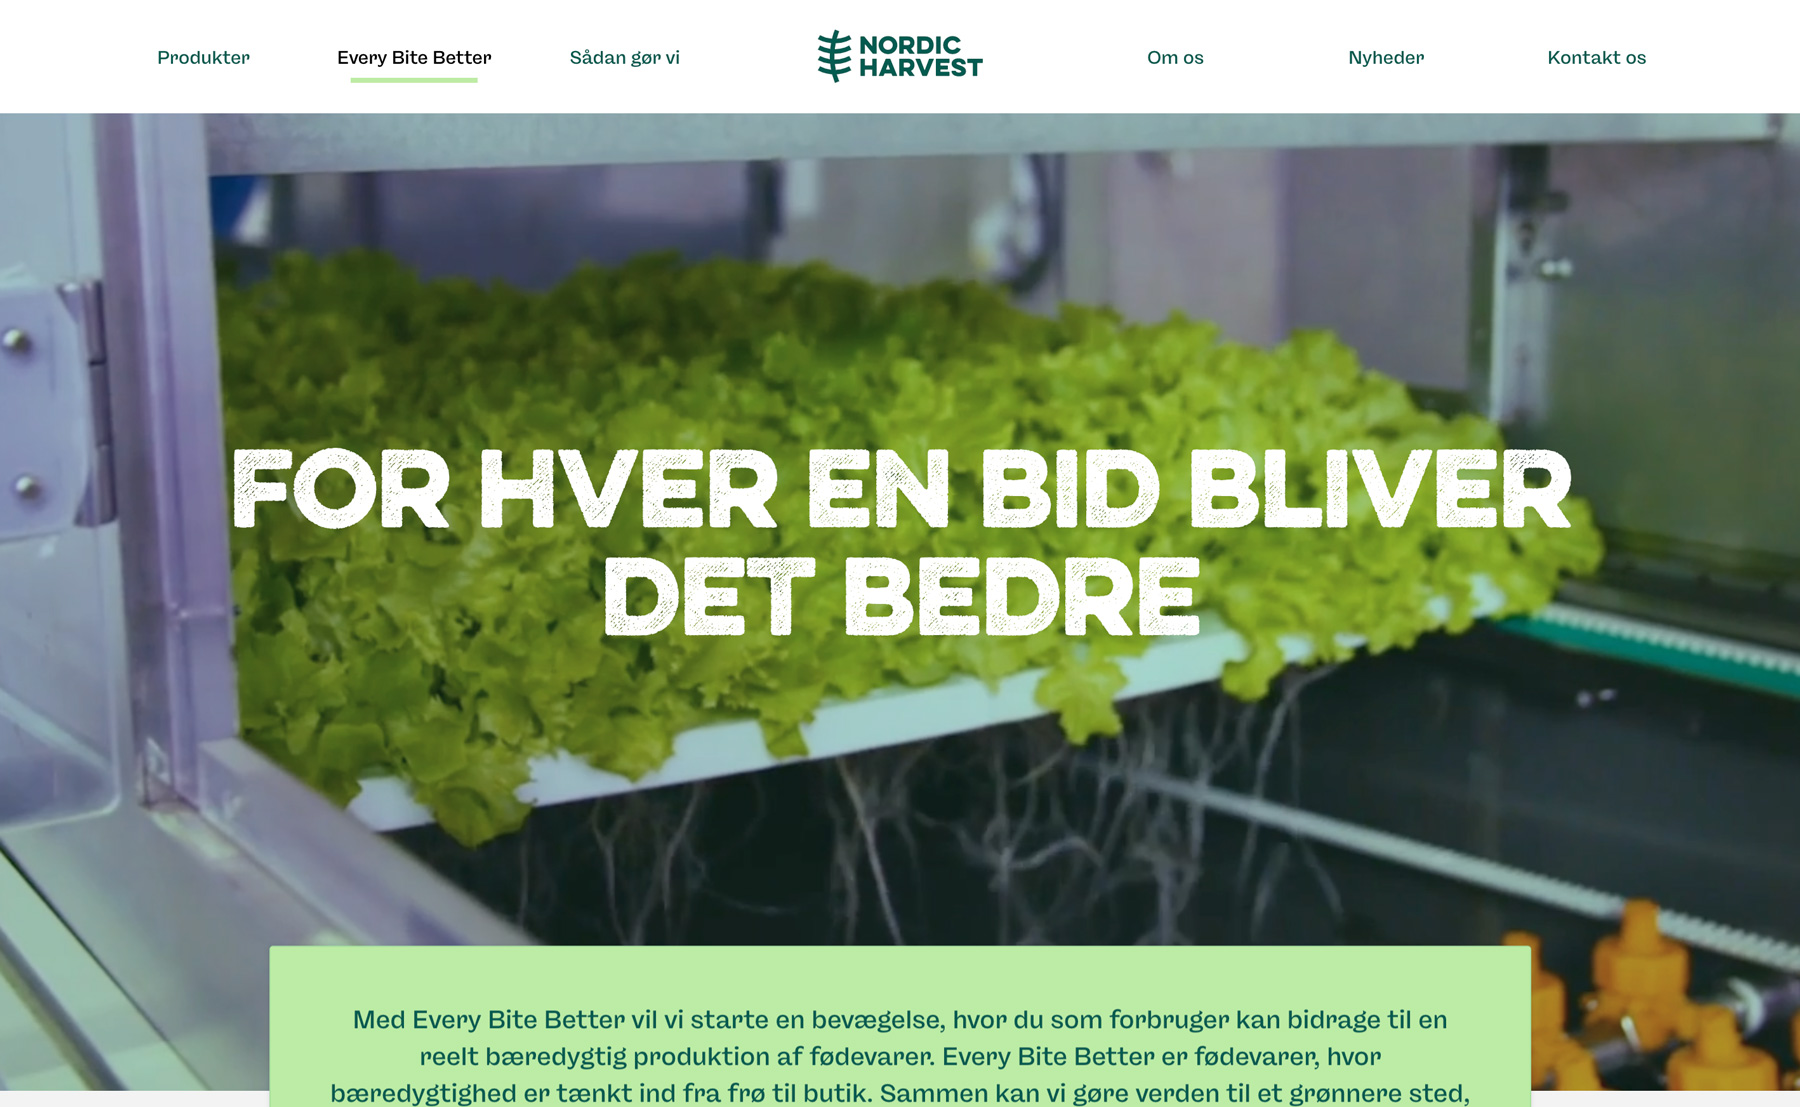 the nordic harvest design of every bit better